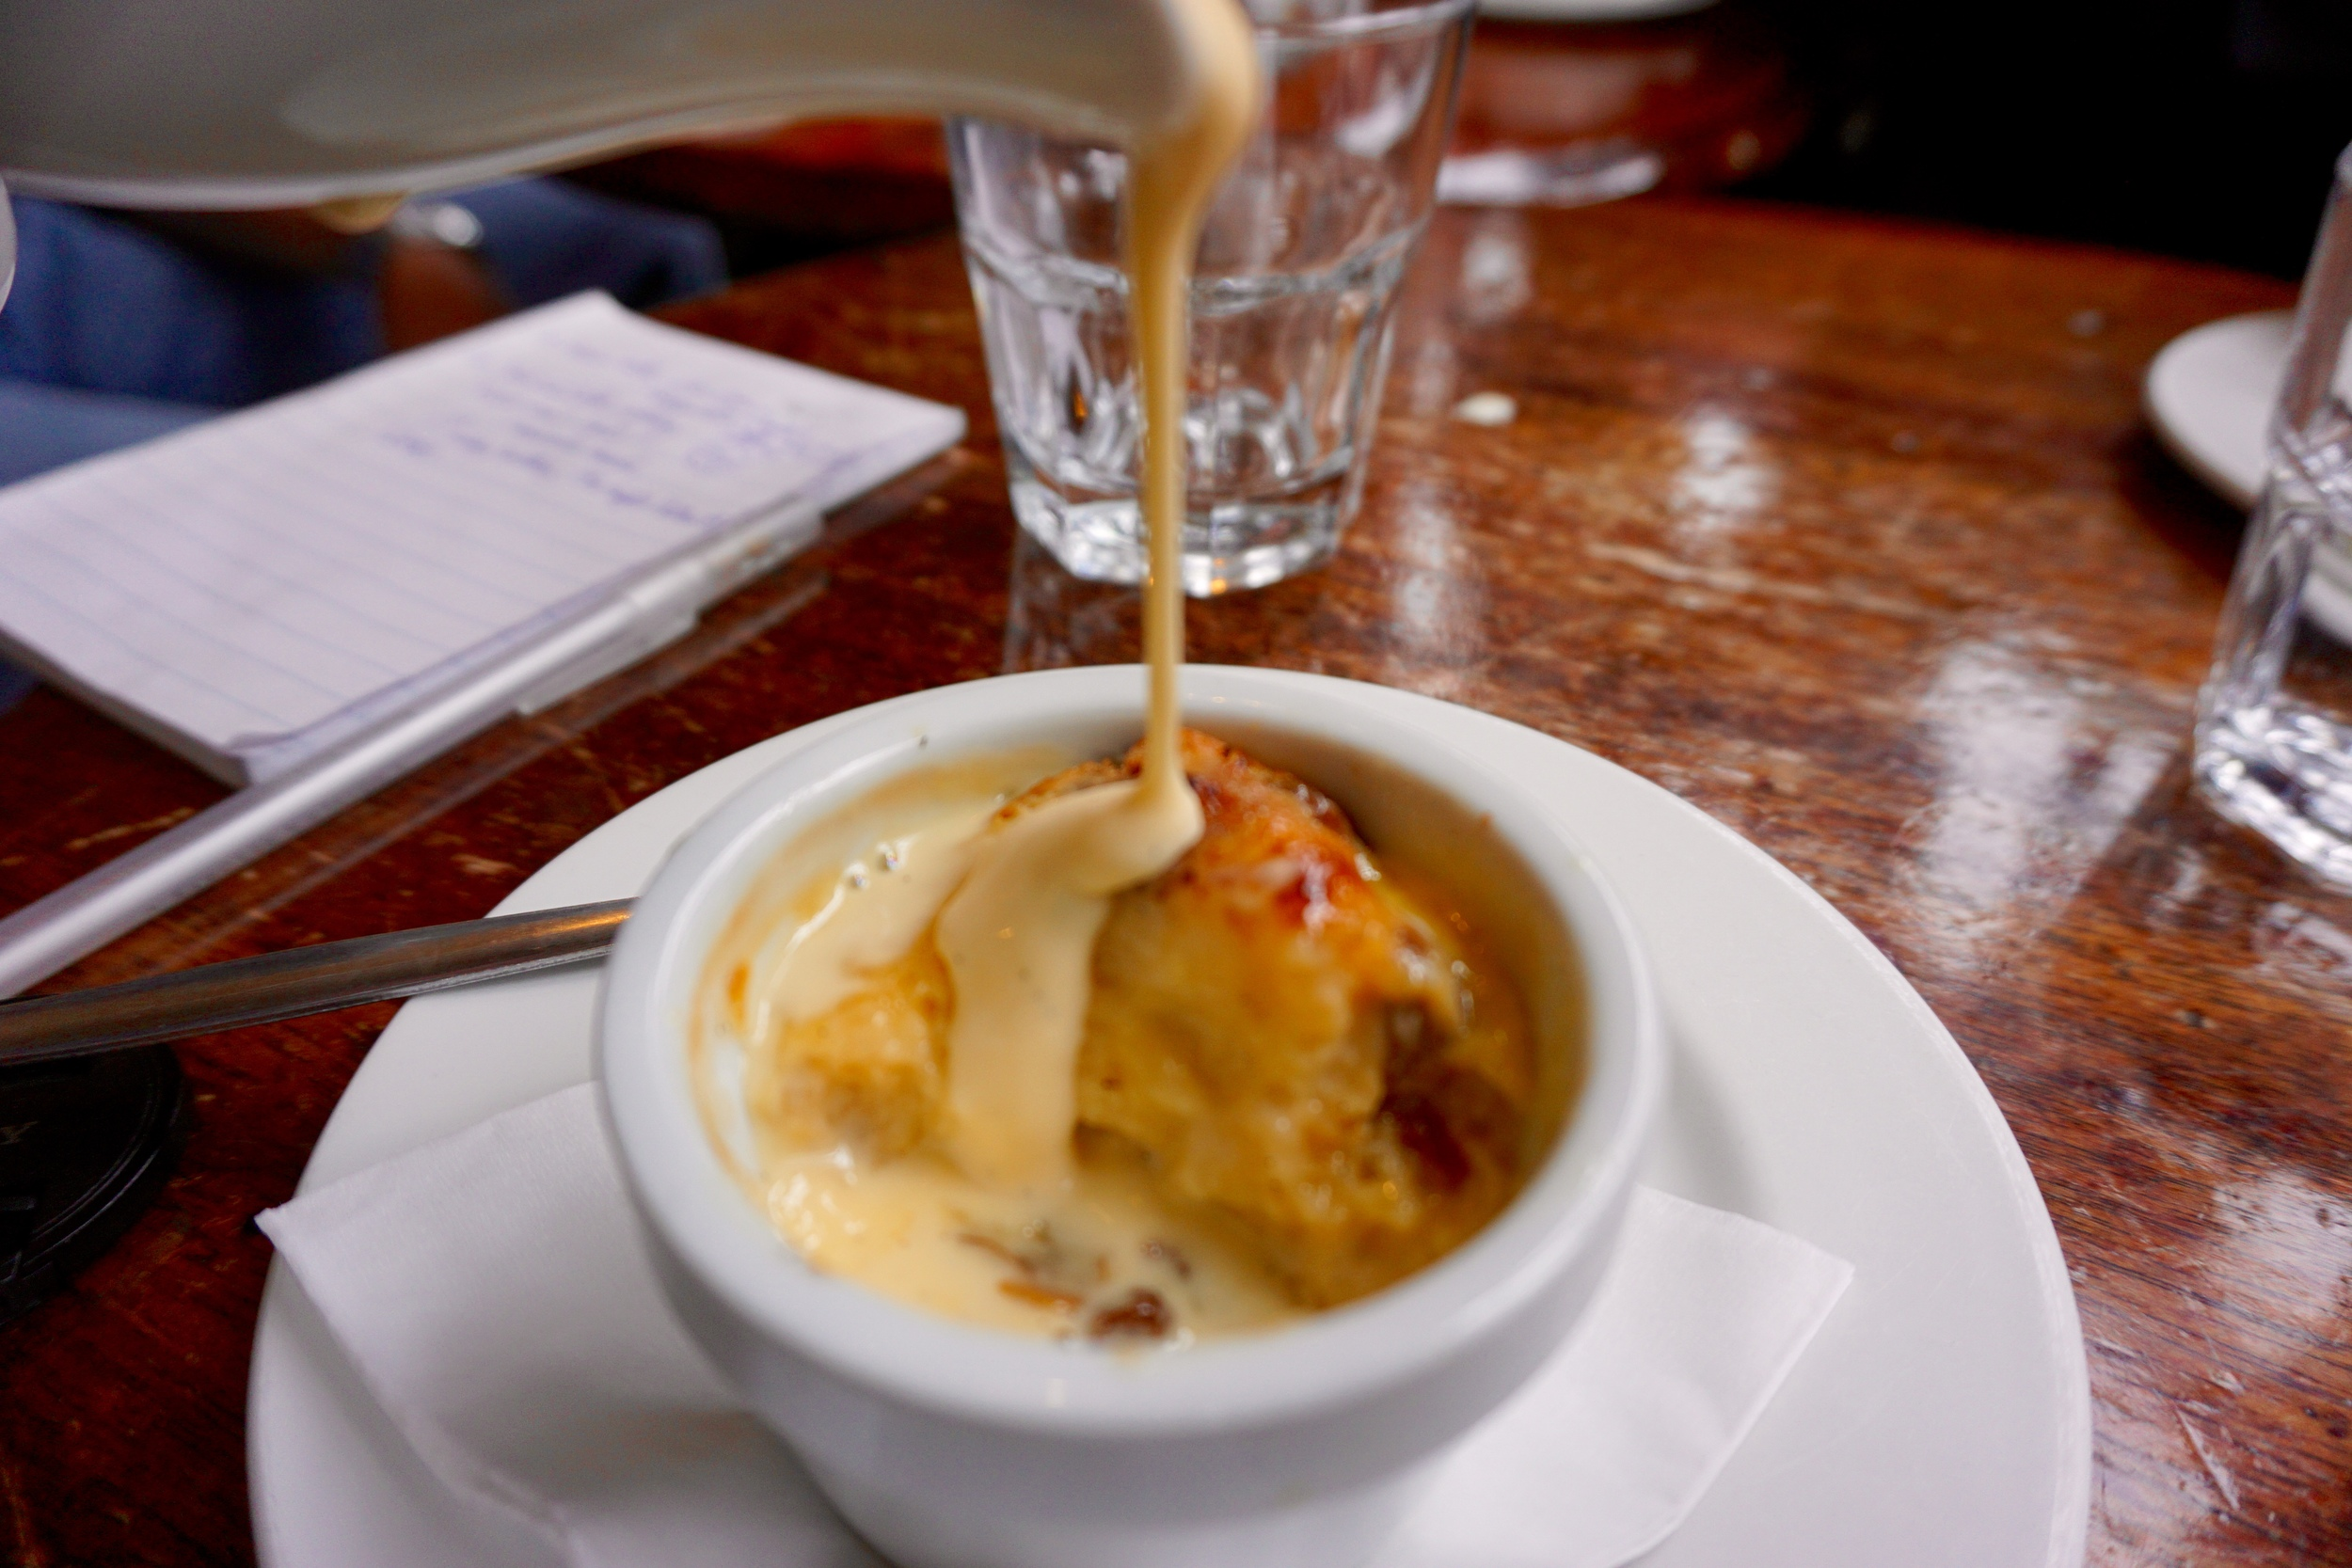 Bread and butter pudding. Good grief.